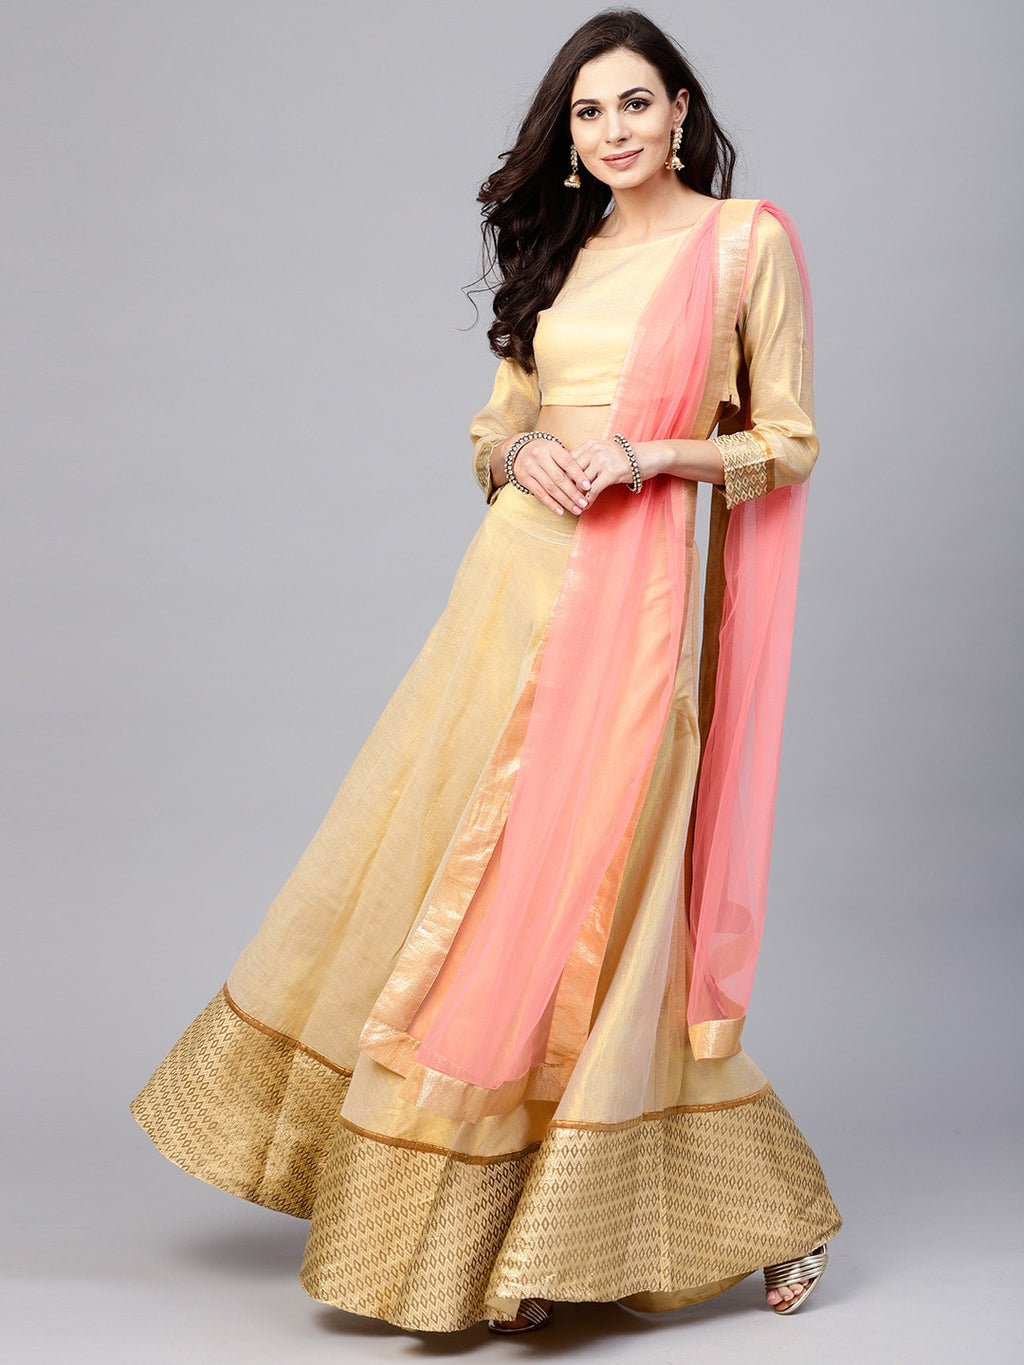 Beige Solid Lehenga With Choli & Pink Dupatta (Fully Stitched) | Znx4ever.com